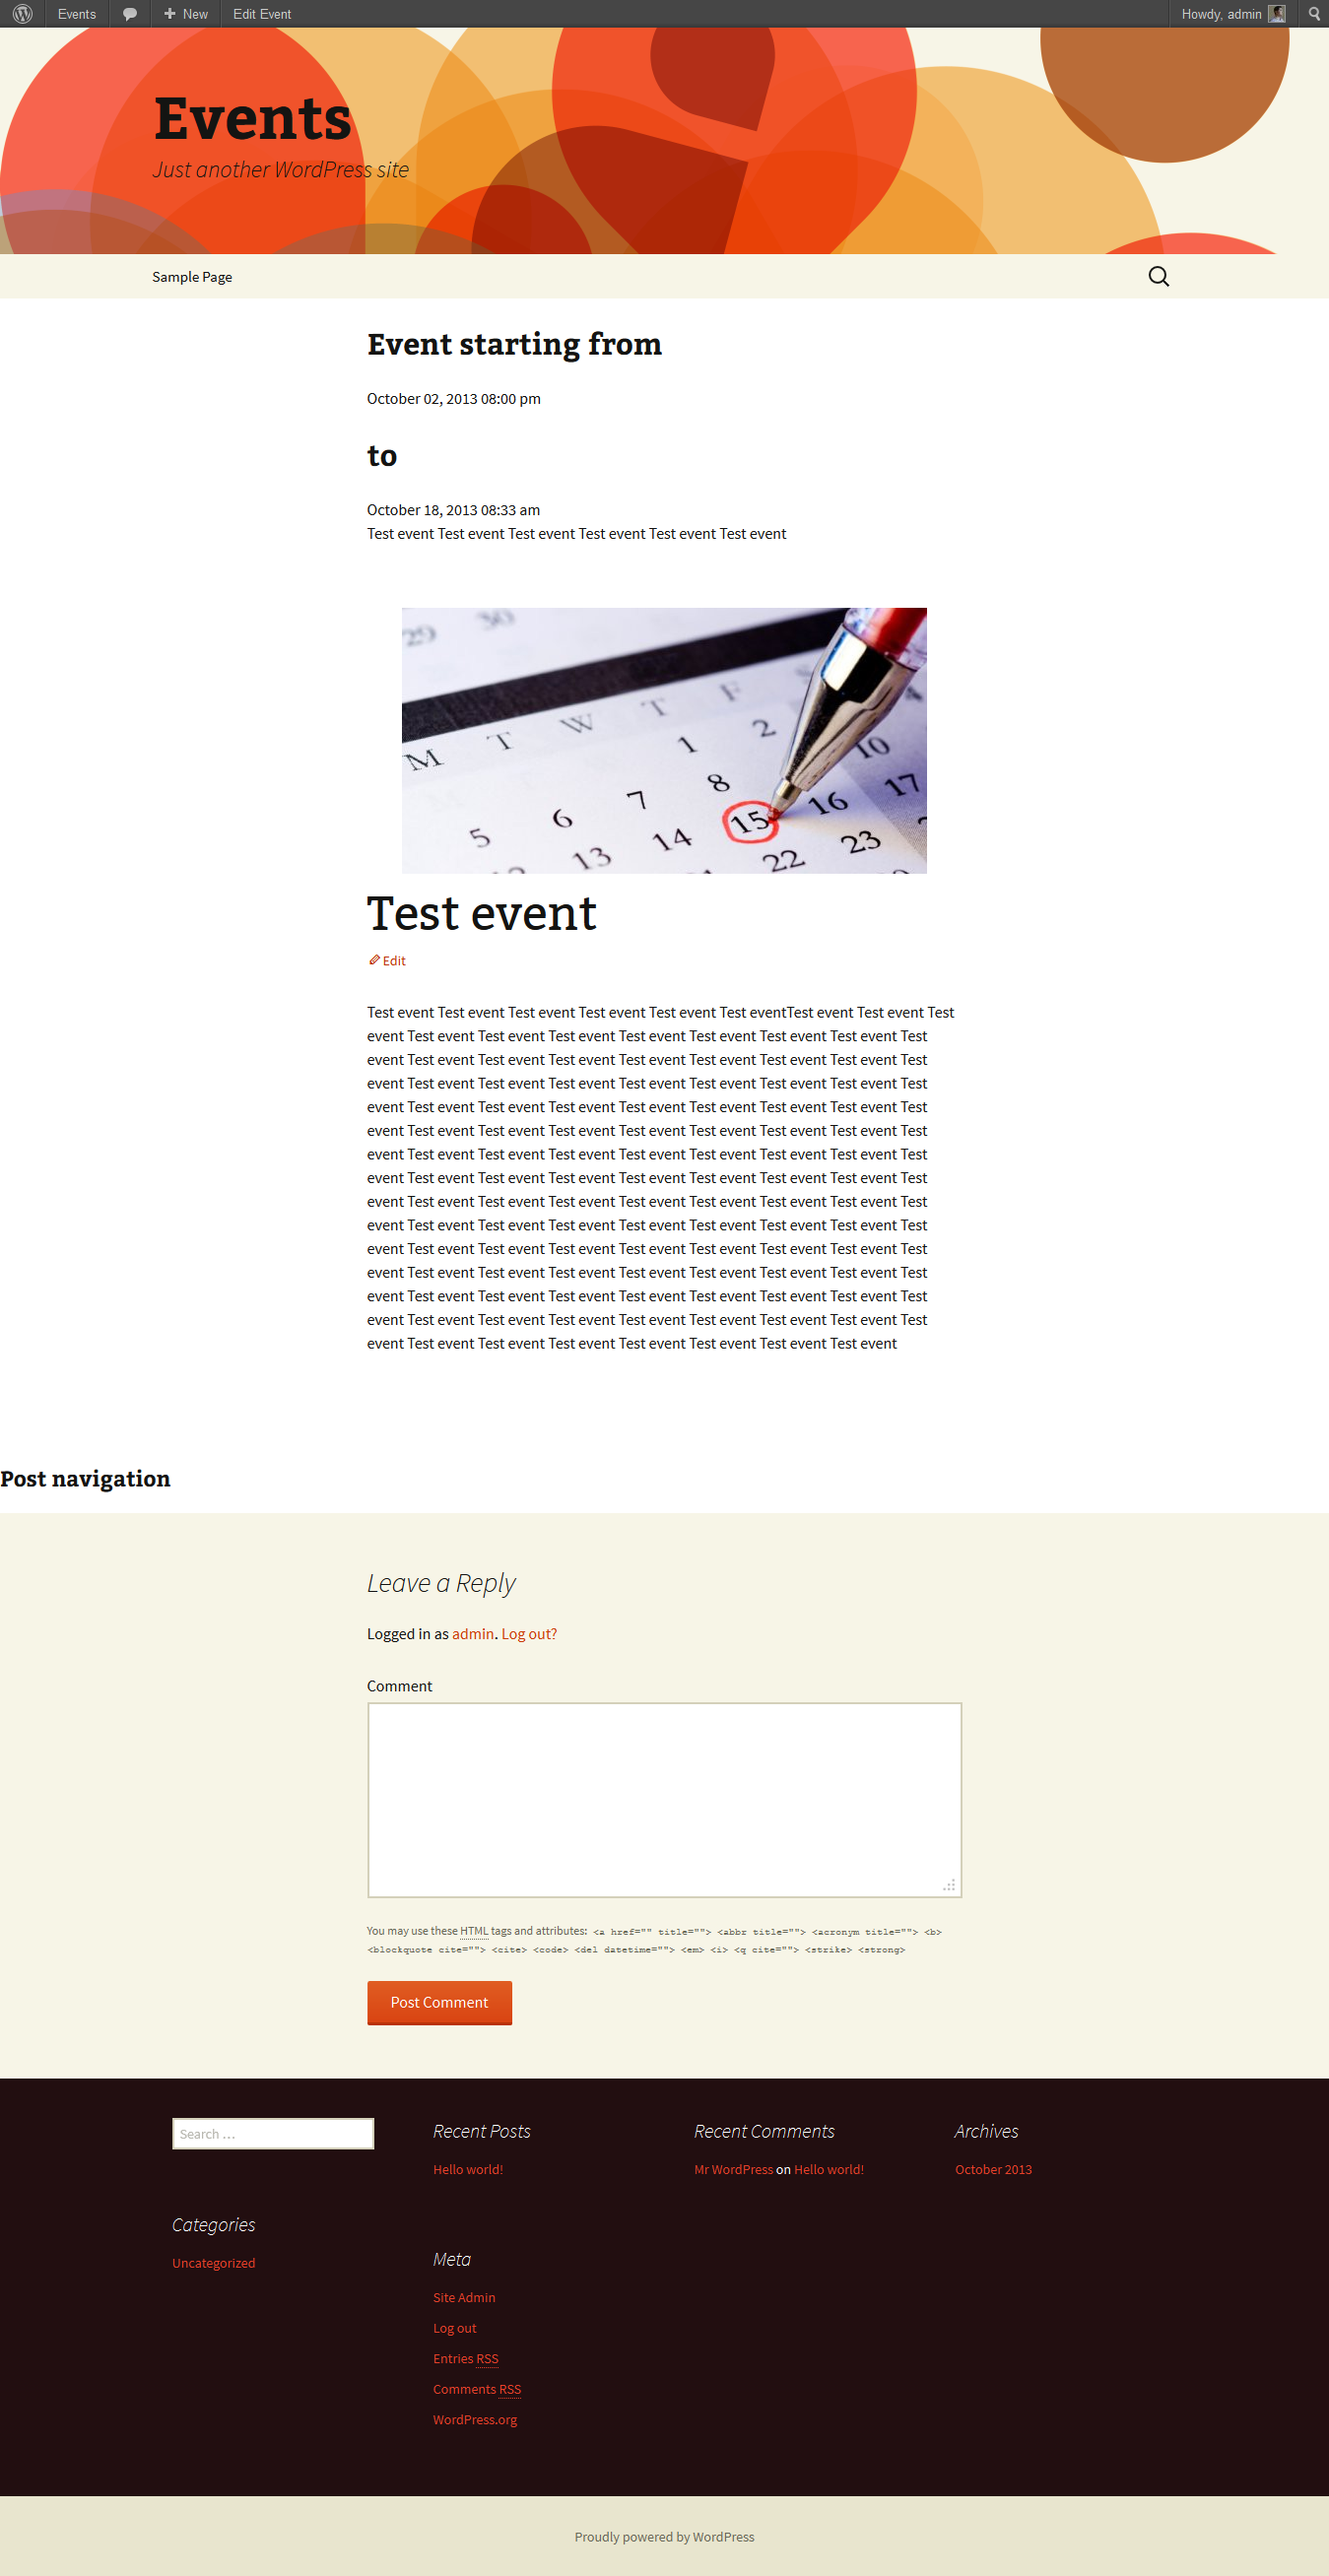 manags-events screenshot 7